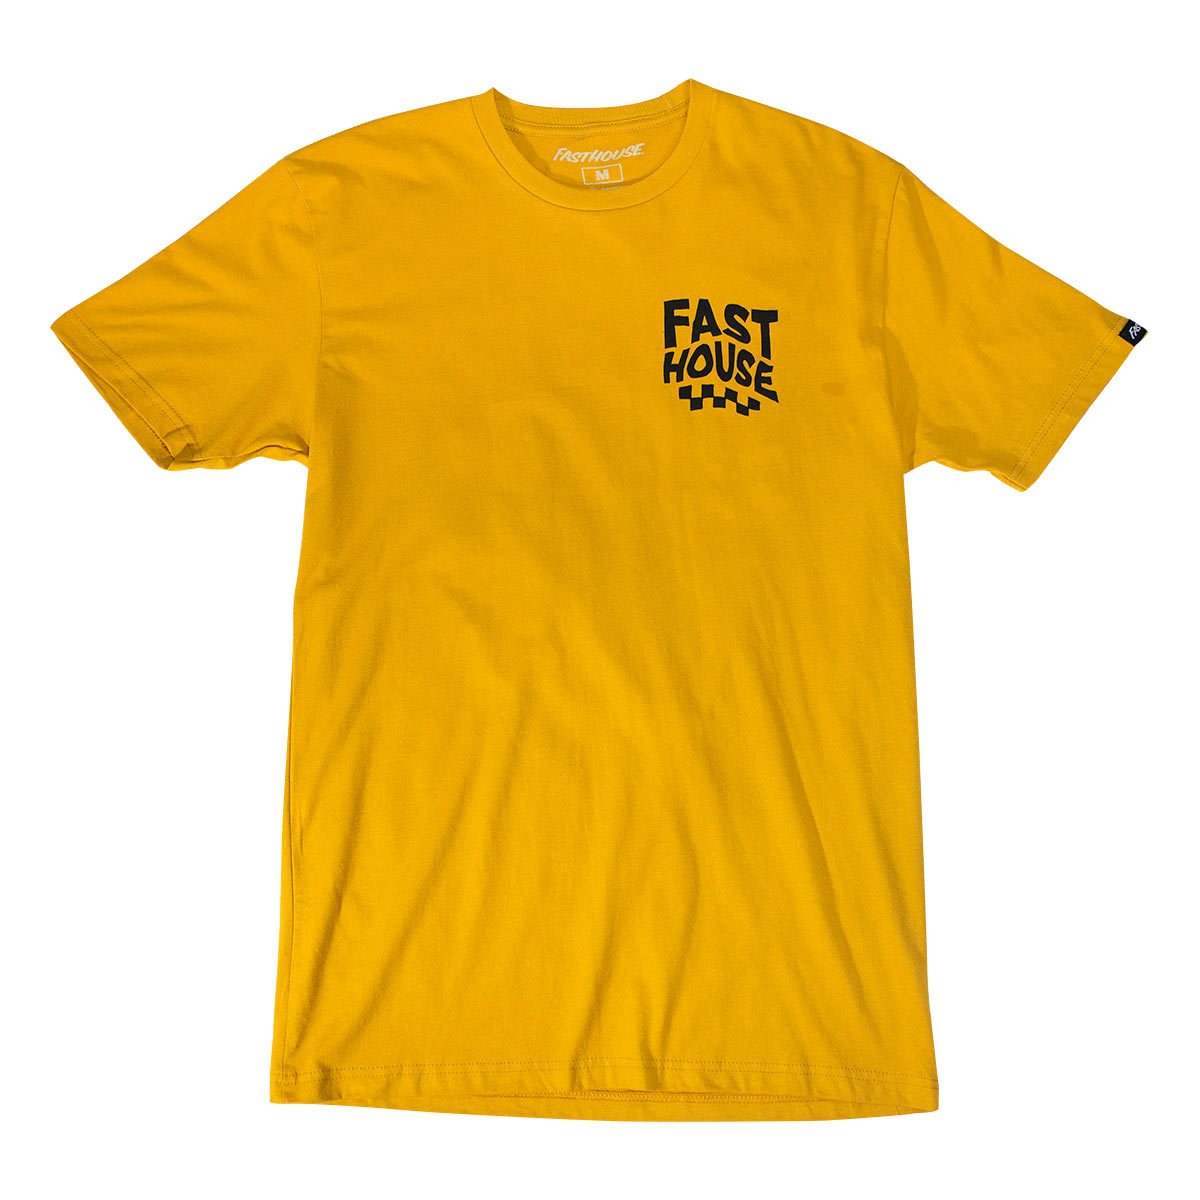 Fasthouse - Flux Tee - Vintage Gold